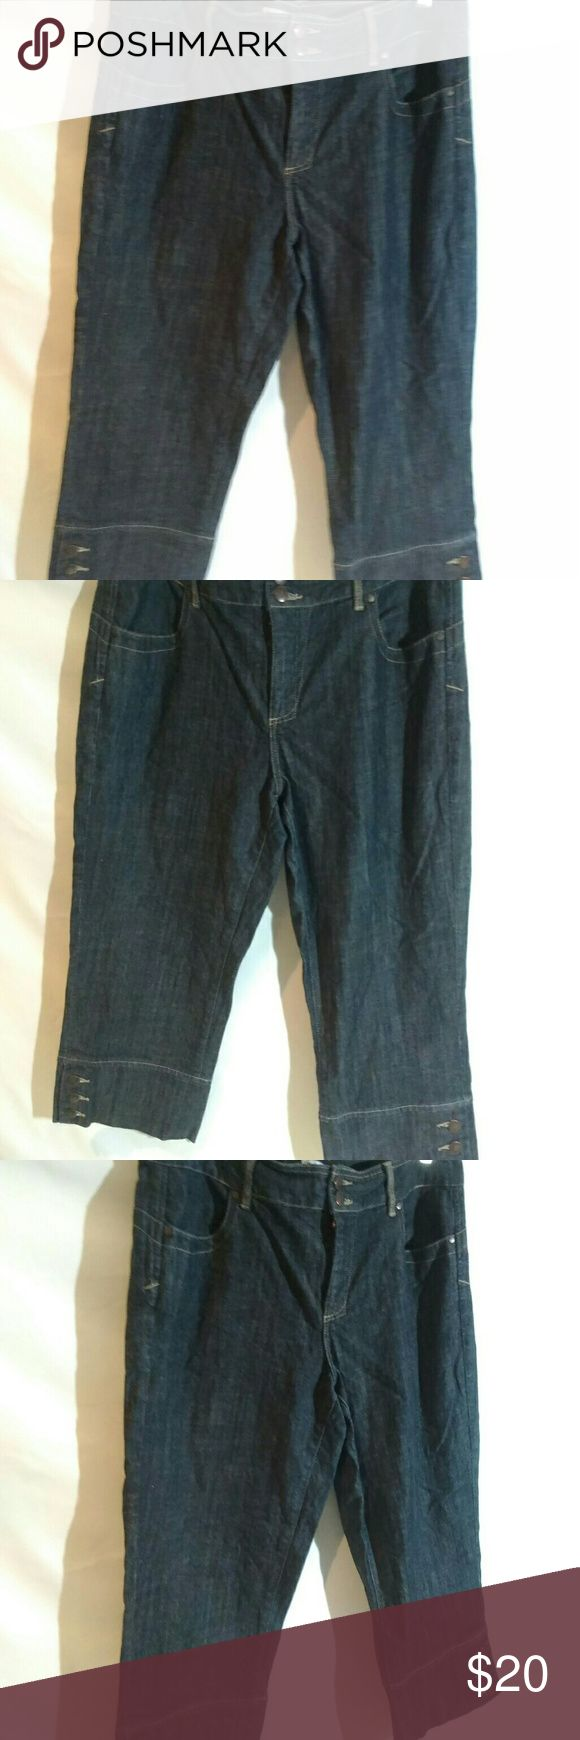 Tommy Hilfiger Cropped Jeans Cropped jeans with front and back pockets, buttons at the bottom, zips and east end in the front and belt loop. Tommy Hilfiger Pants Ankle & Cropped